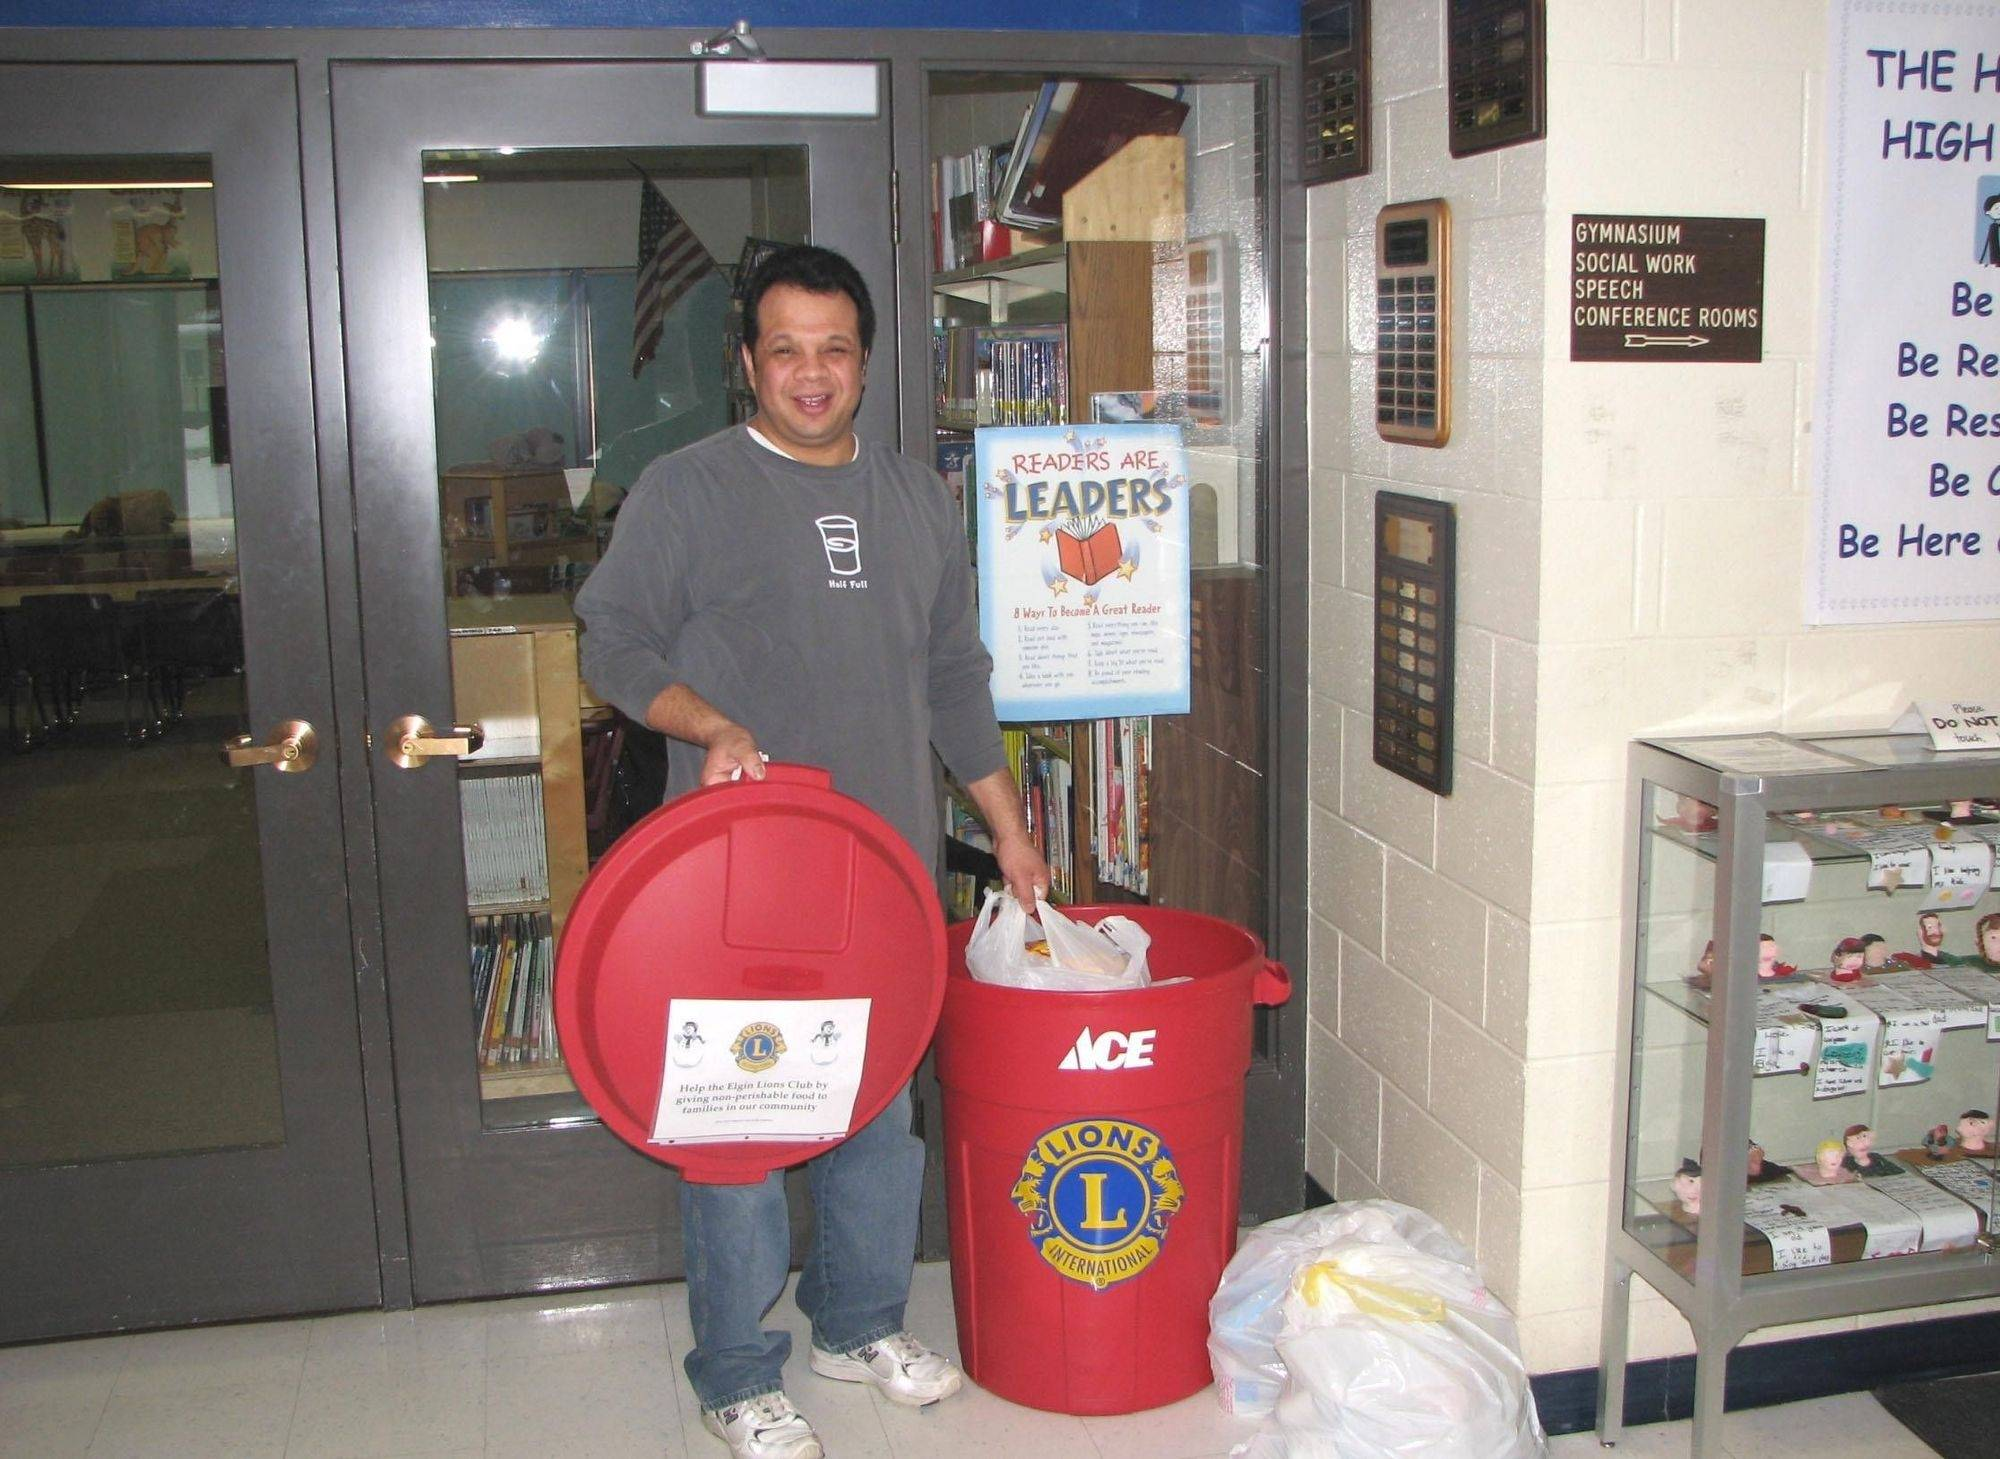 Carlos Trujillo, home school liaison administrator at Highland Elementary School, shows off the Elgin Lions Club collection bin for nonperishable food donations.